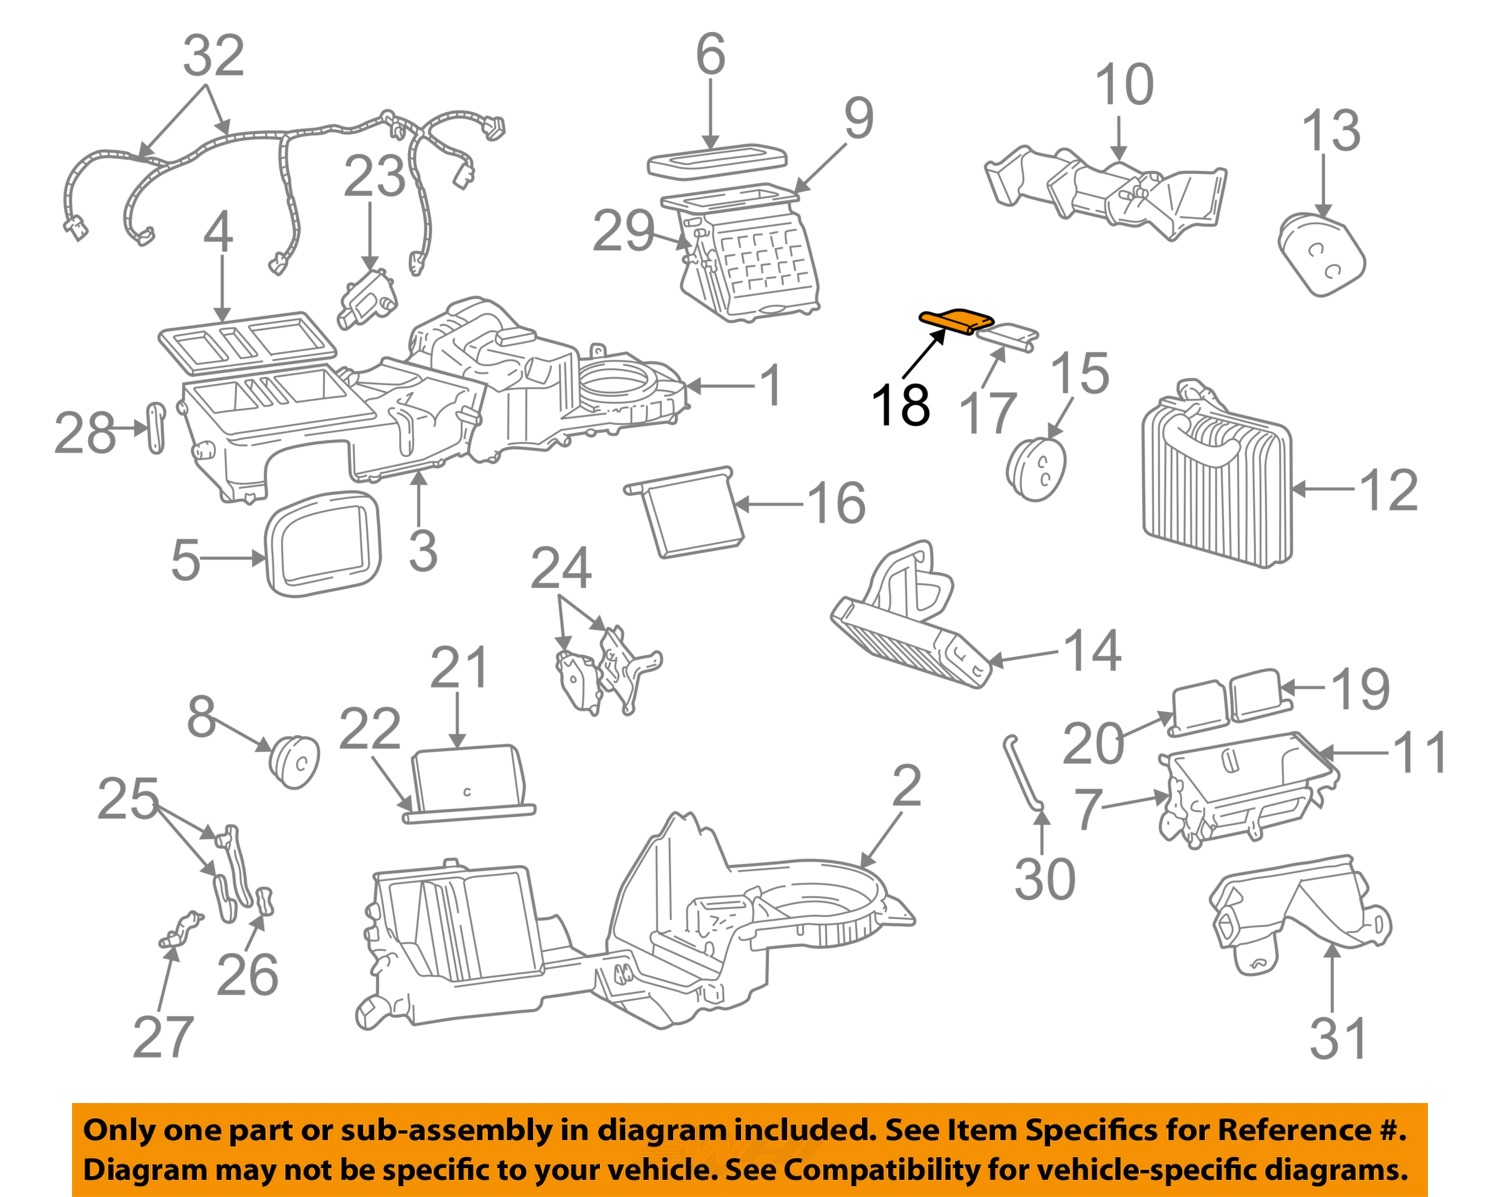 99 Jeep Door Parts Diagram Wiring For Free I2313355 In Addition Zj Doors Furthermore Cherokee Xj Rear V7 Also Additionally Wj07805